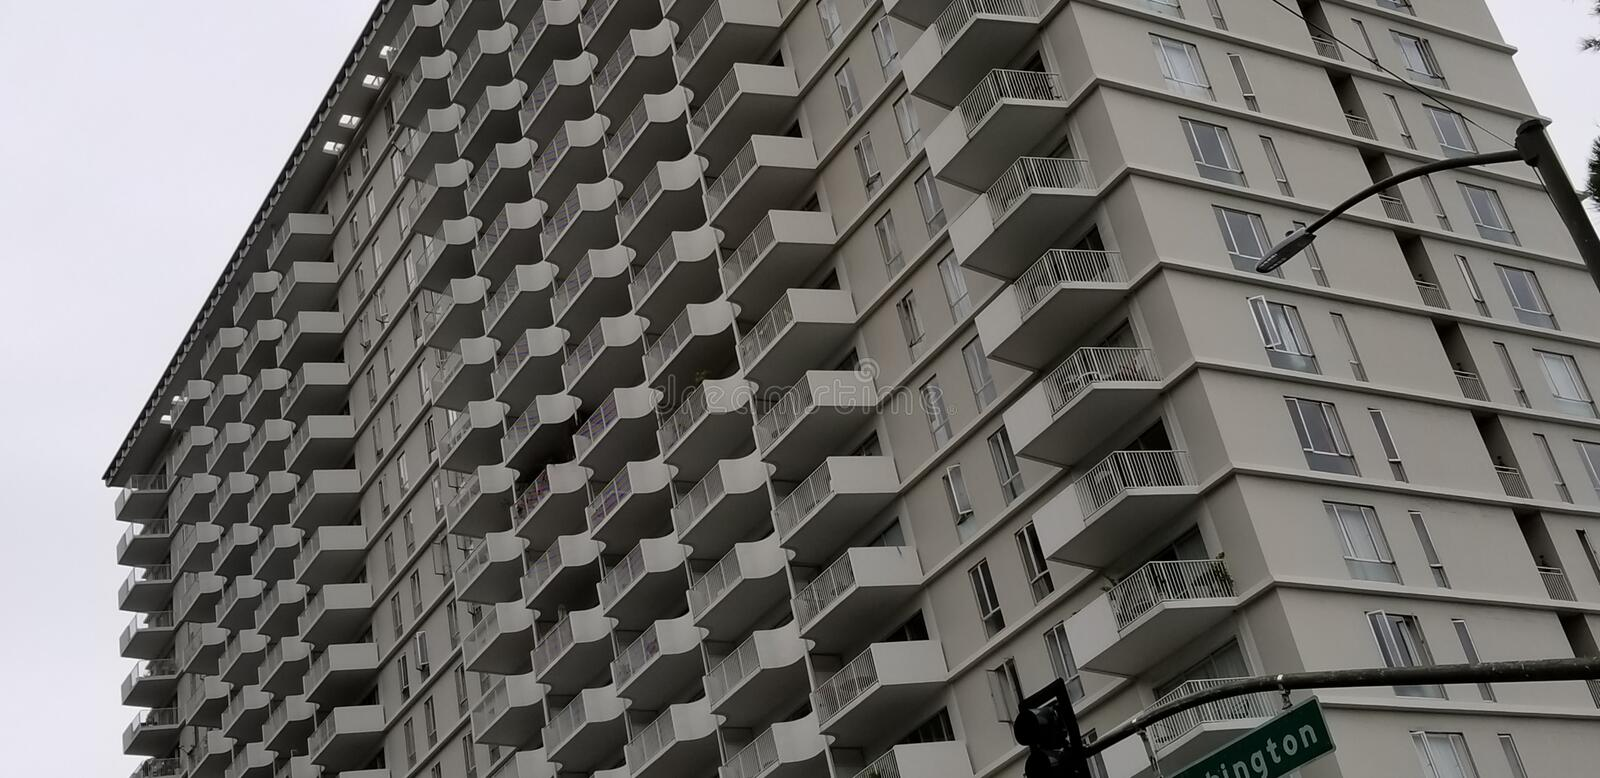 High rise image stock